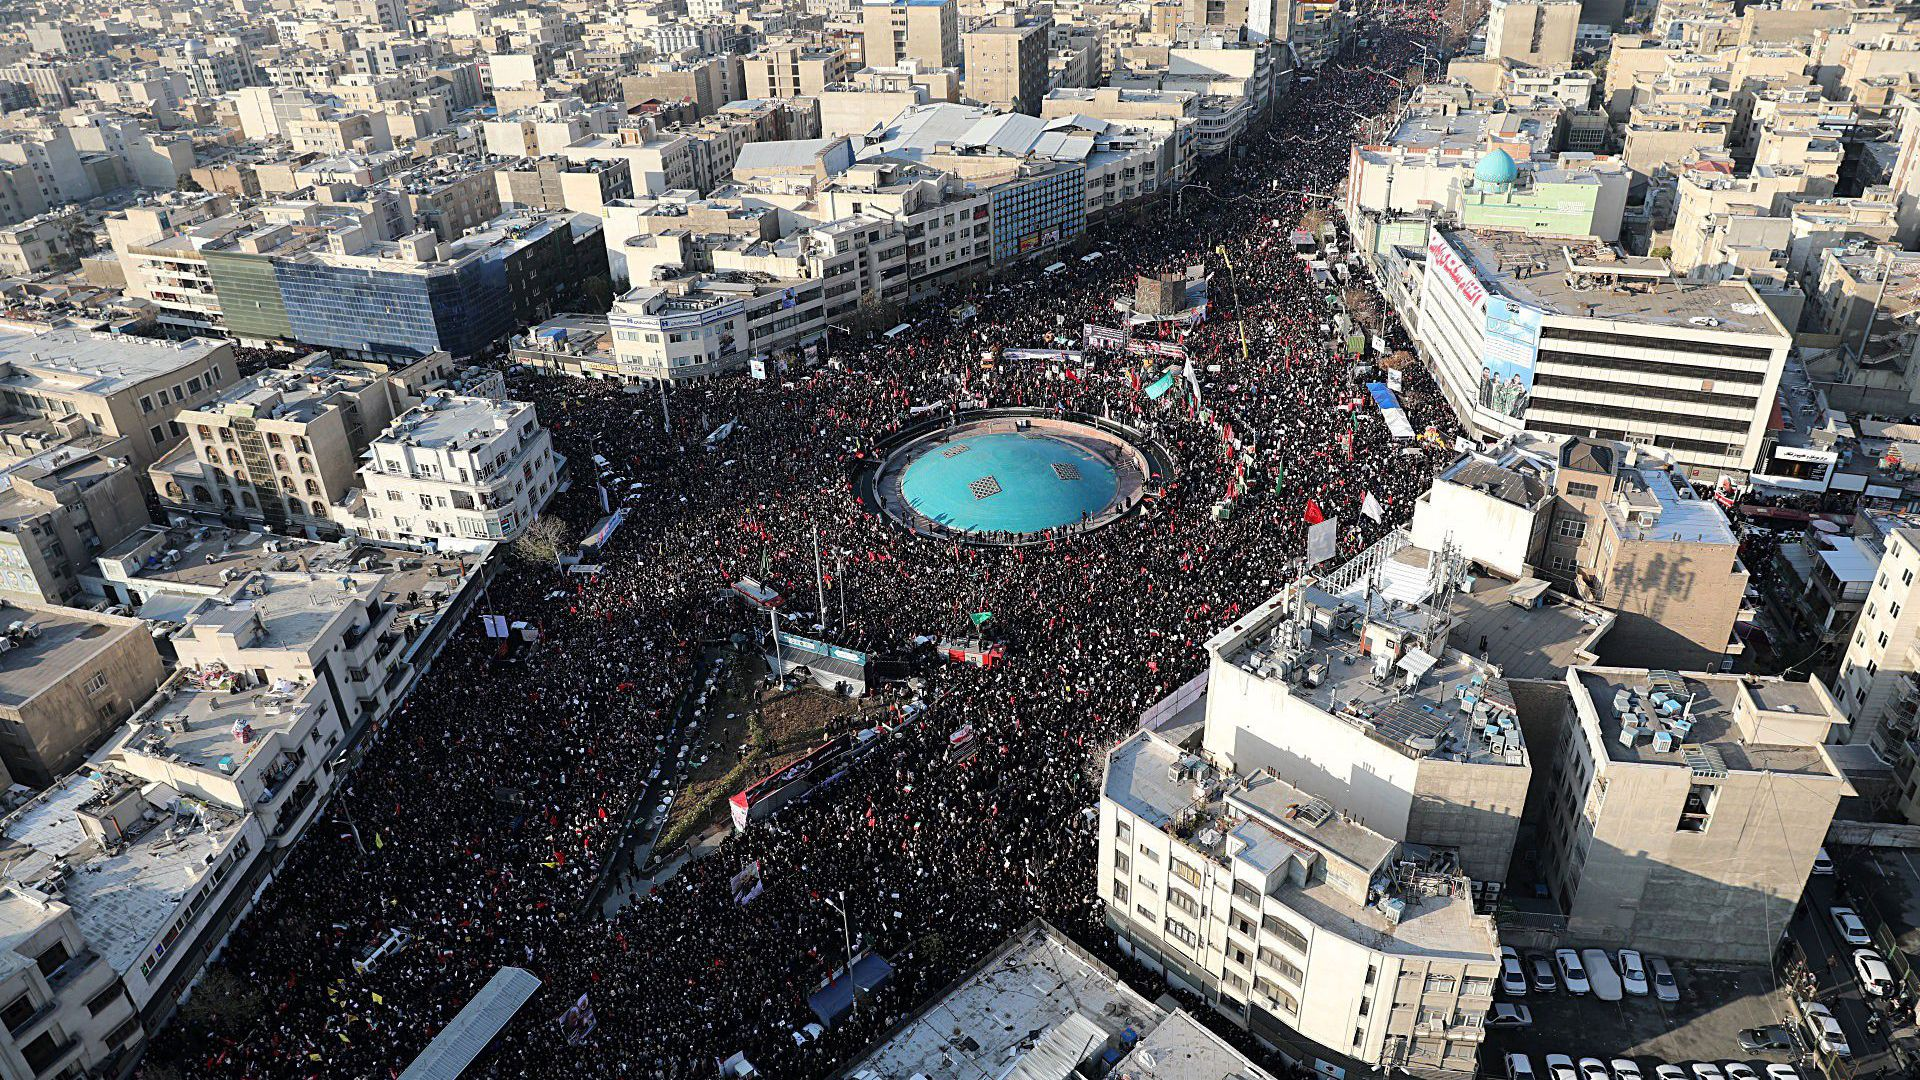 In photos: Huge crowds in Iran for Soleimani funeral